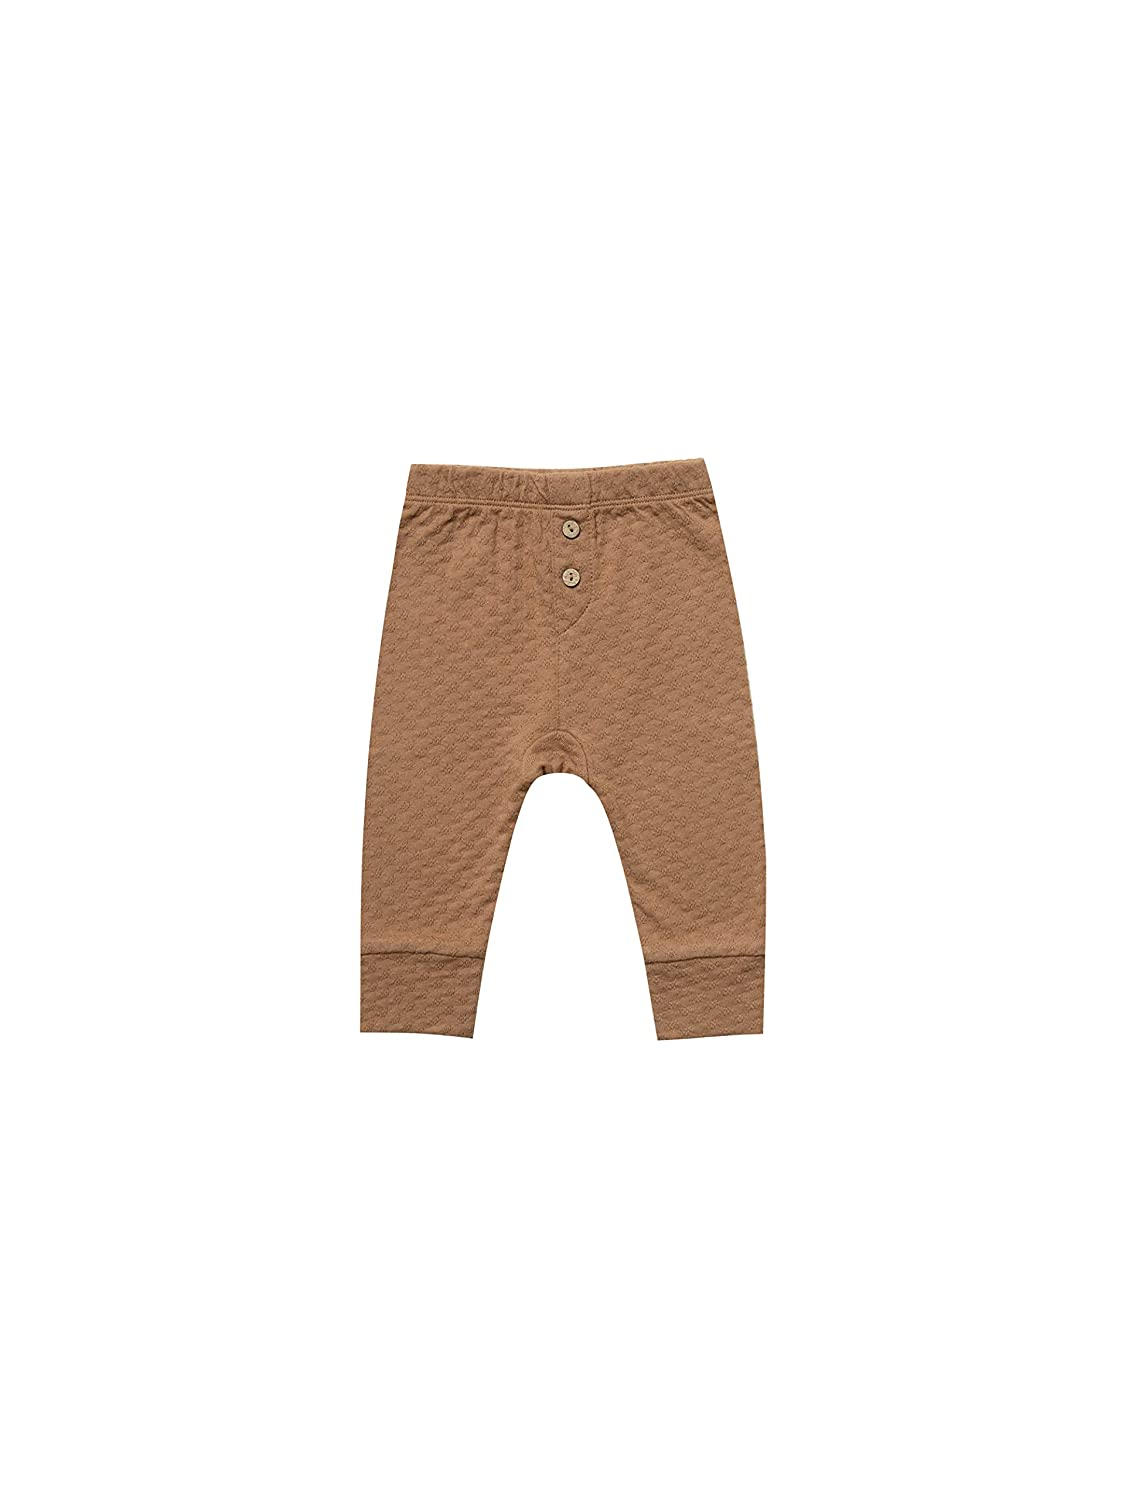 Quincy Mae Pointelle Kimono Bodysuit for Baby Boys and Girls Copper